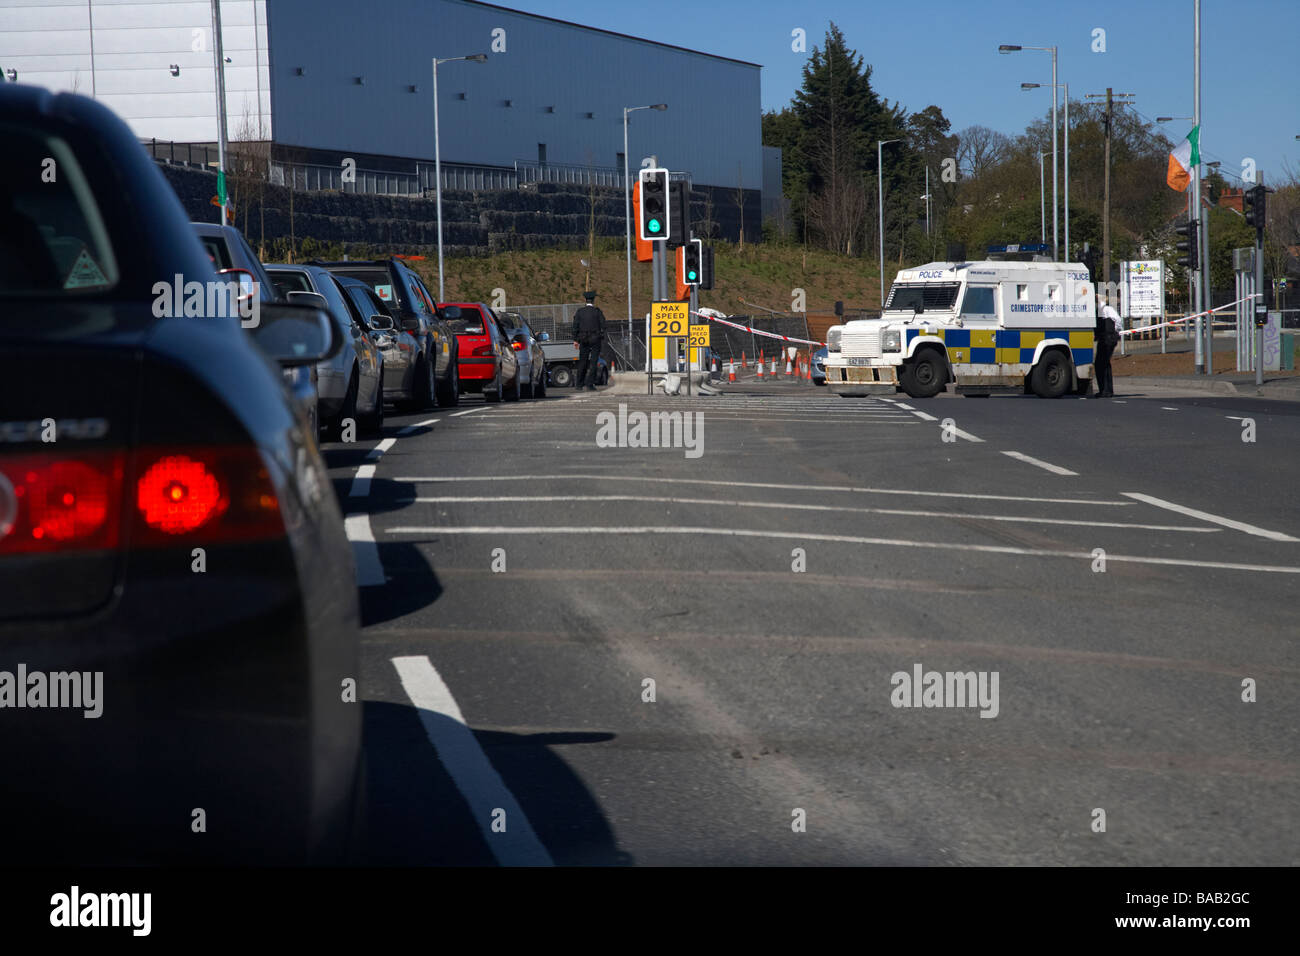 psni police roadblock and traffic jam as a result of a security alert of a suspicious object placed by dissident - Stock Image